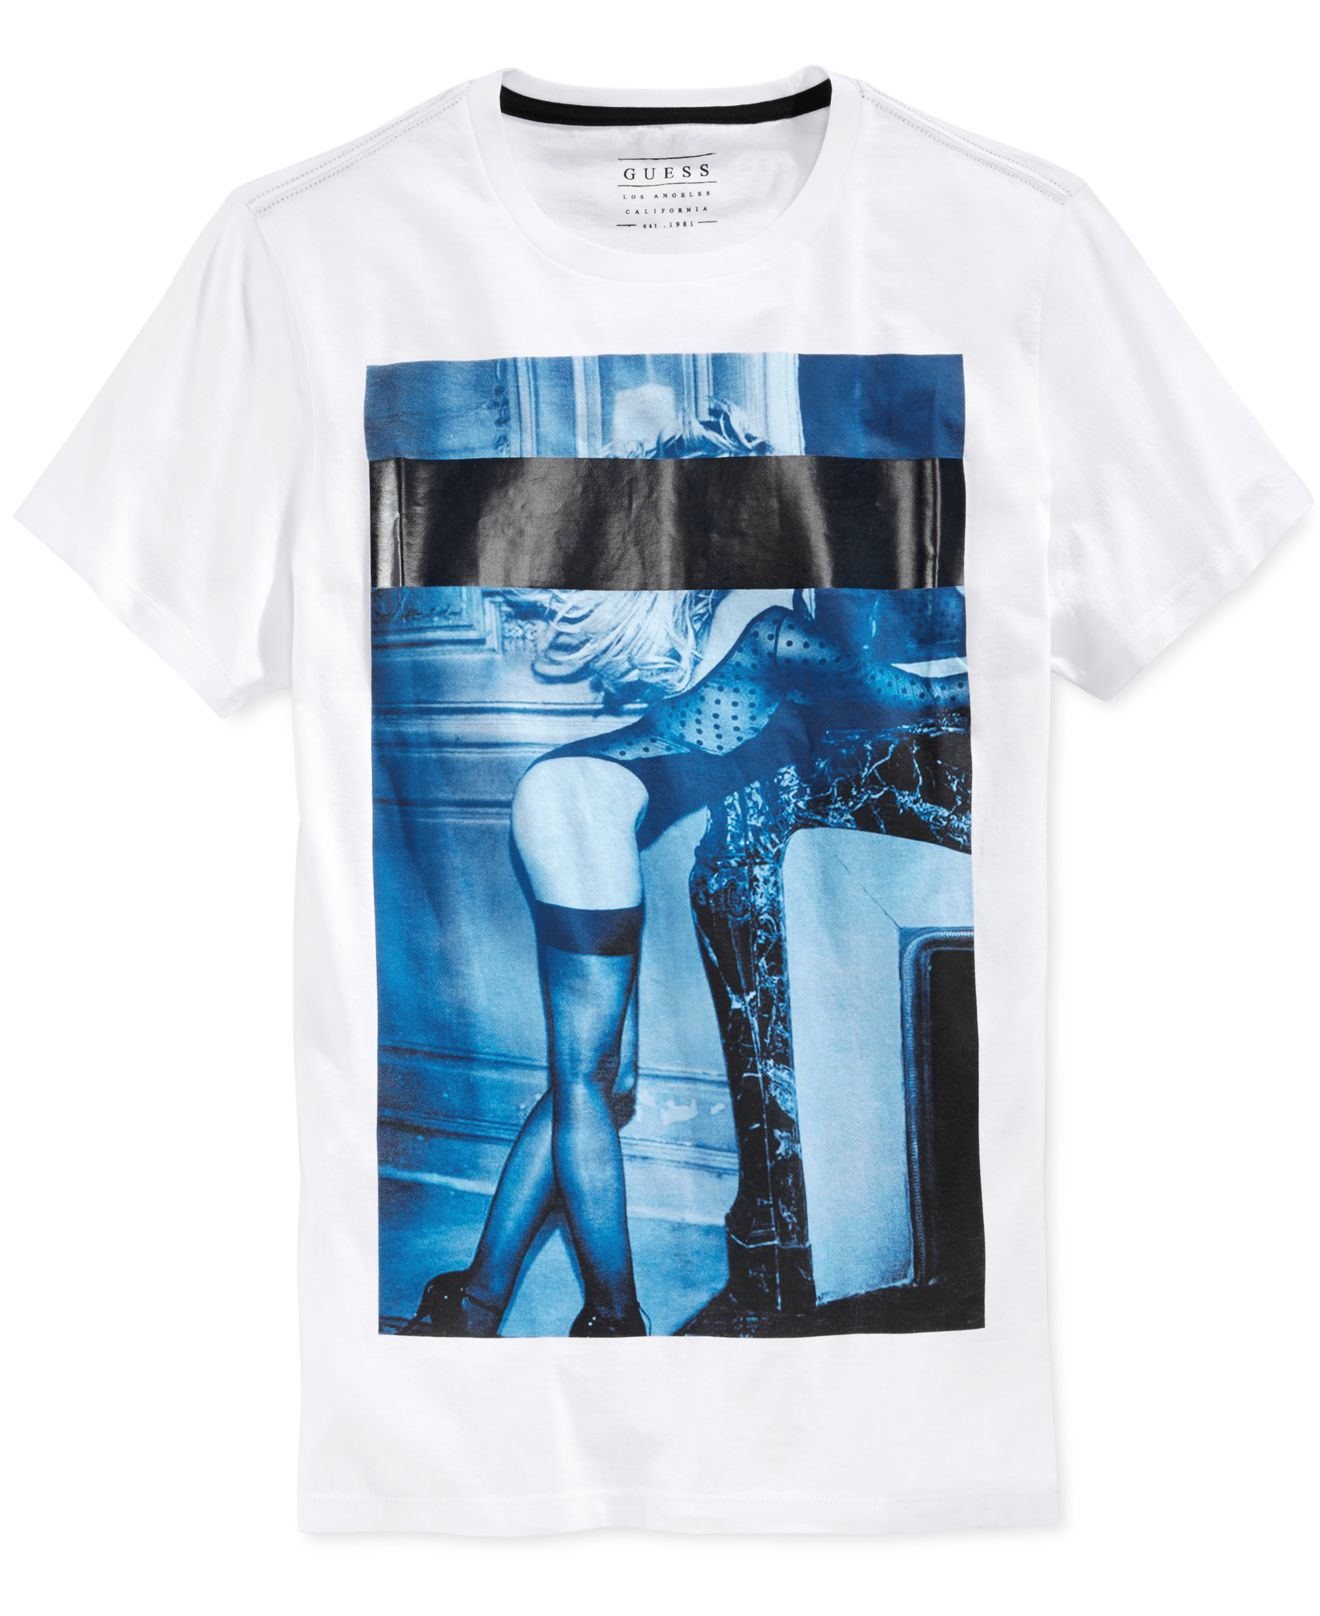 Lyst Guess Mens Censored Girl Graphic Print T Shirt In White For Men